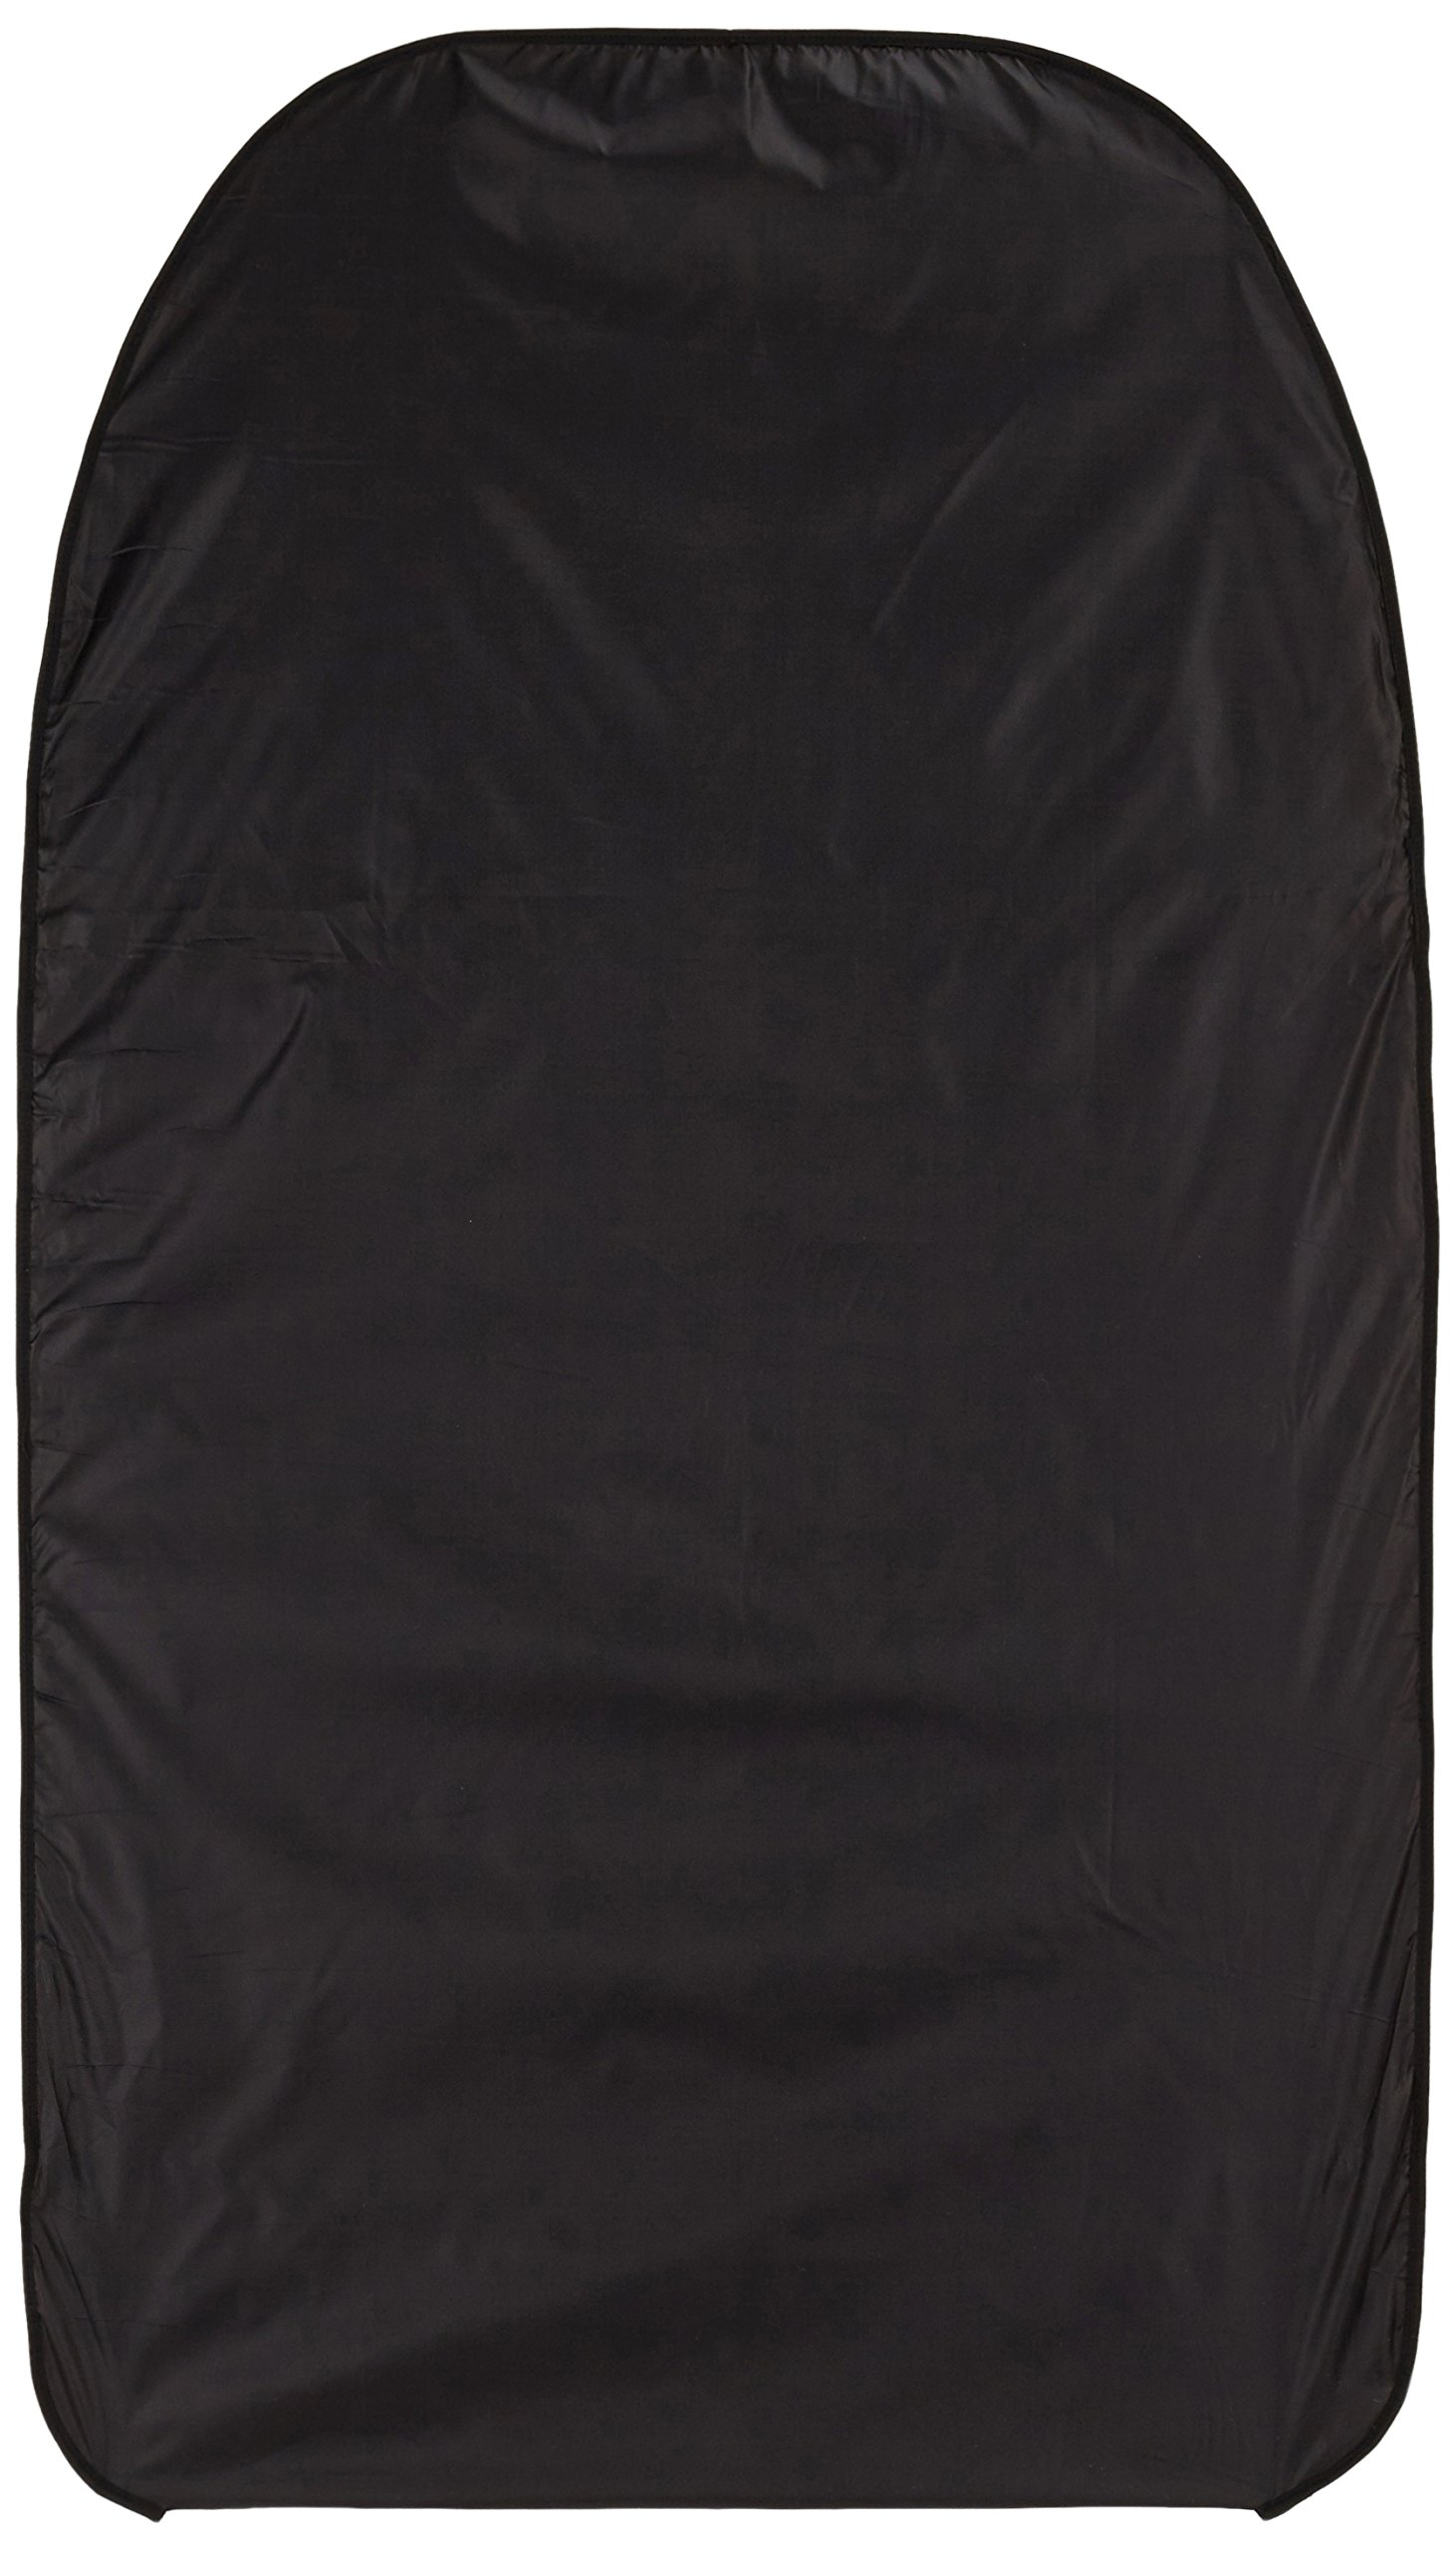 Dresselhaus Workshop Car Seat Cover, Universal Cover for Lounger Lightweight Design; Made from Polyester Taffeta Fabric, 4730, Pack of 1, Black